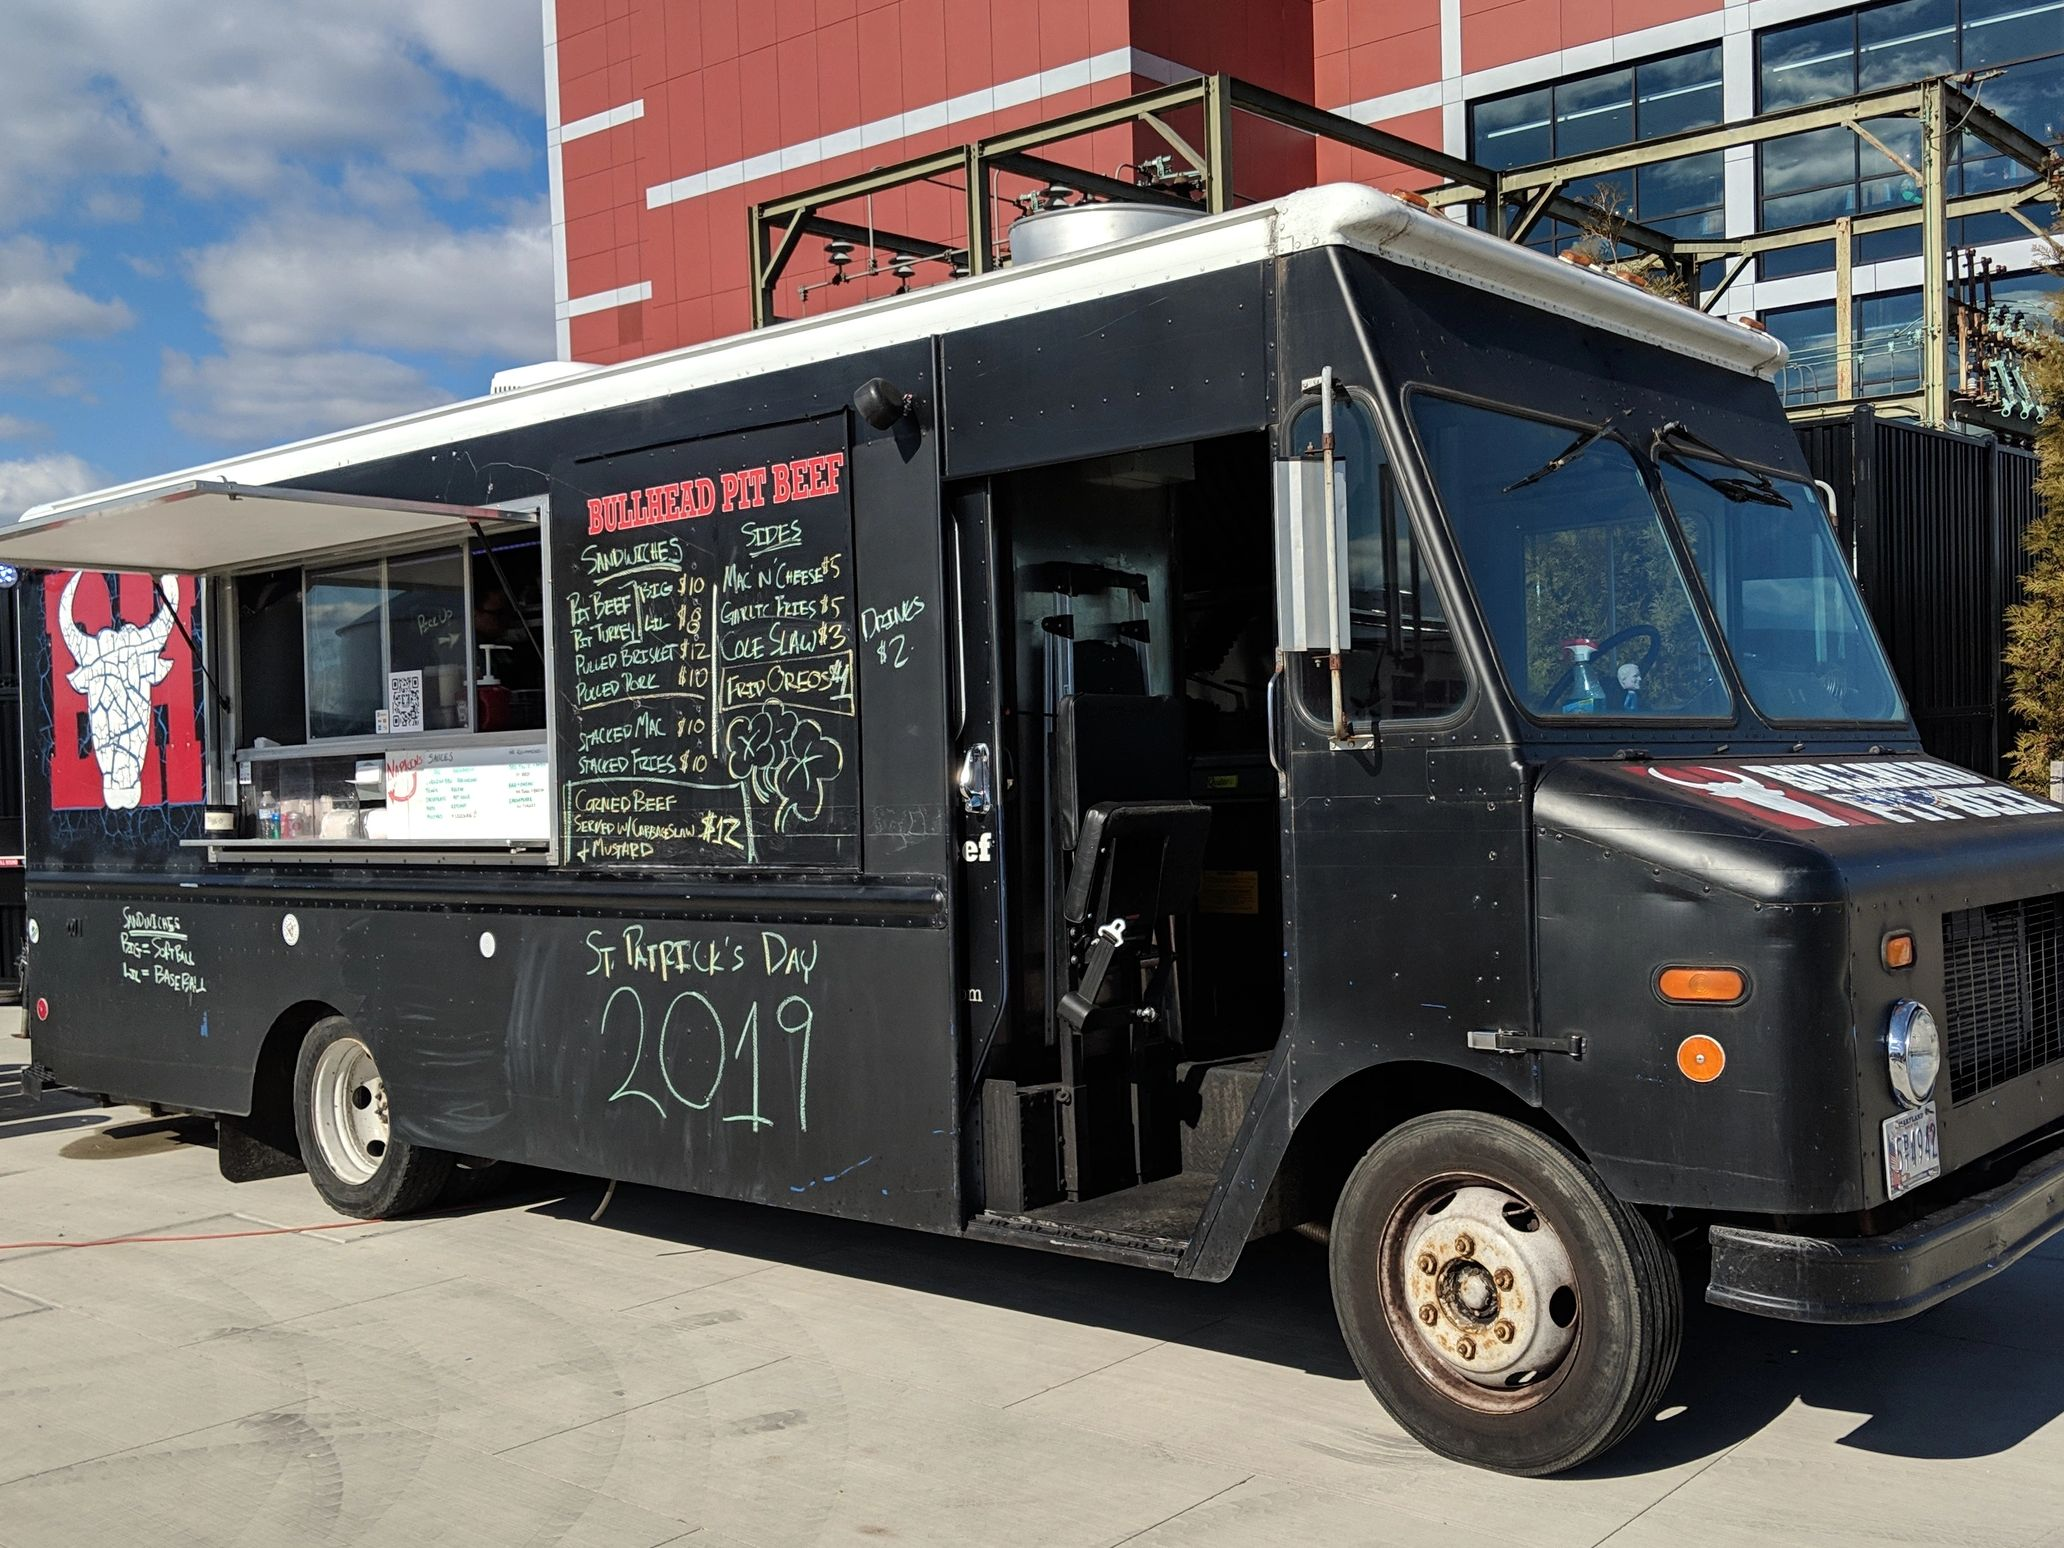 We got our start on our food truck, Bullhead #1. All we know about BBQ, we learned on four wheels.